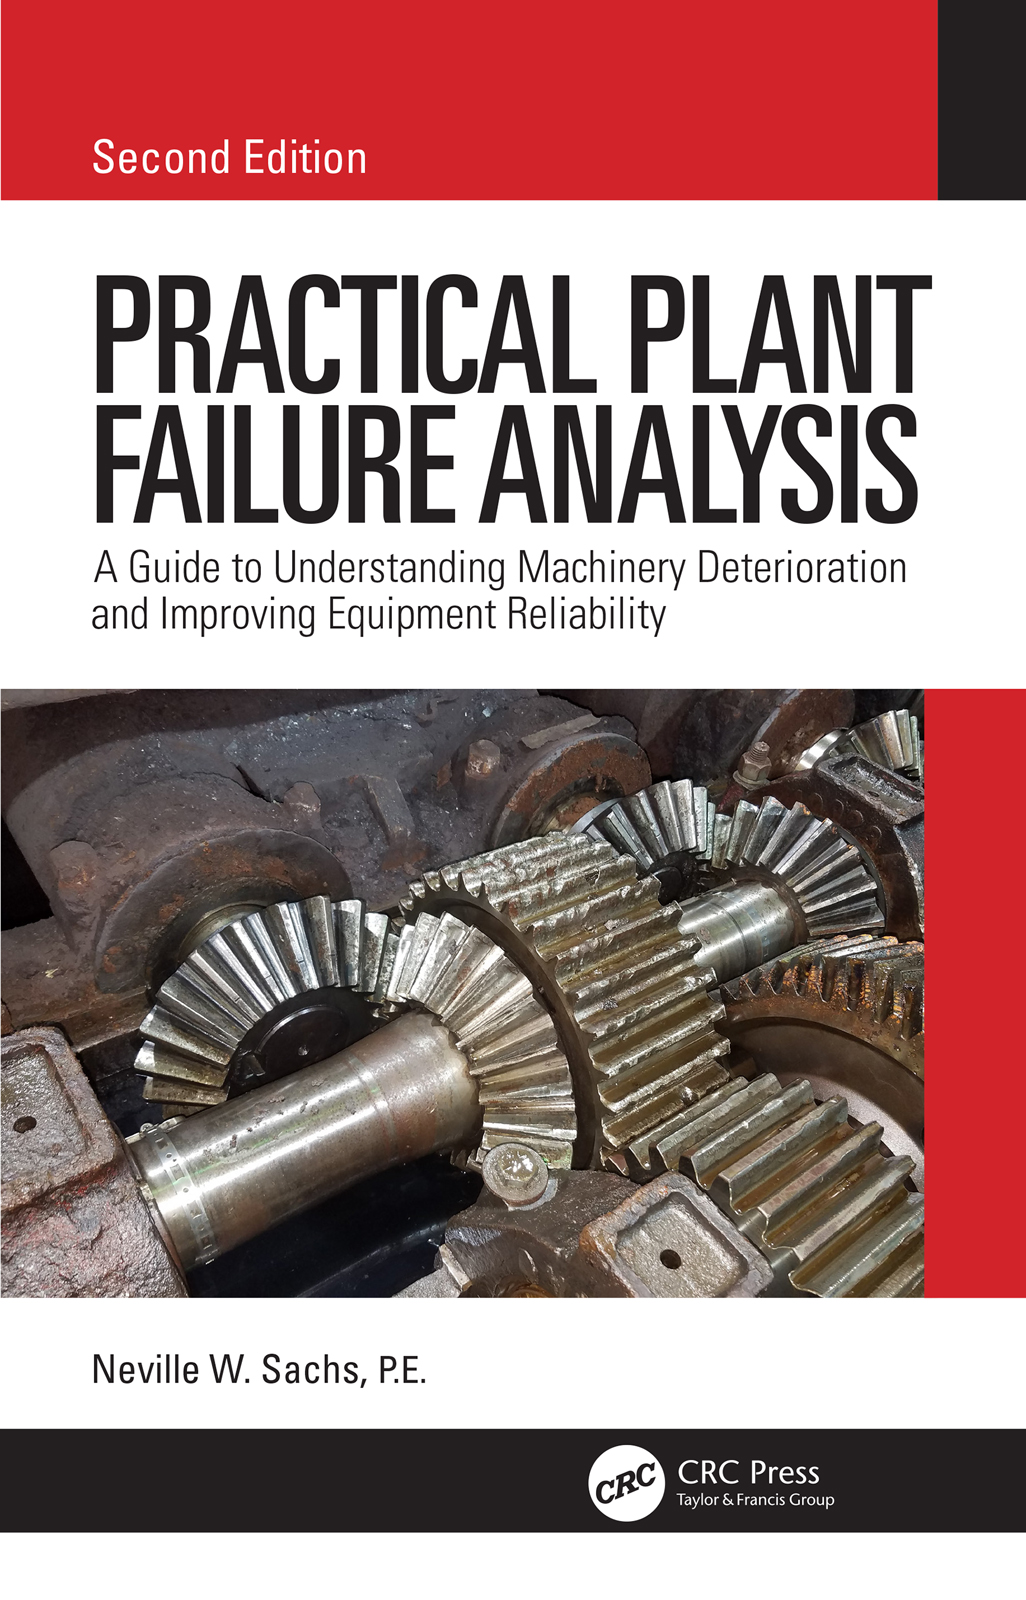 Practical Plant Failure Analysis: A Guide to Understanding Machinery Deterioration and Improving Equipment Reliability, Second Edition book cover